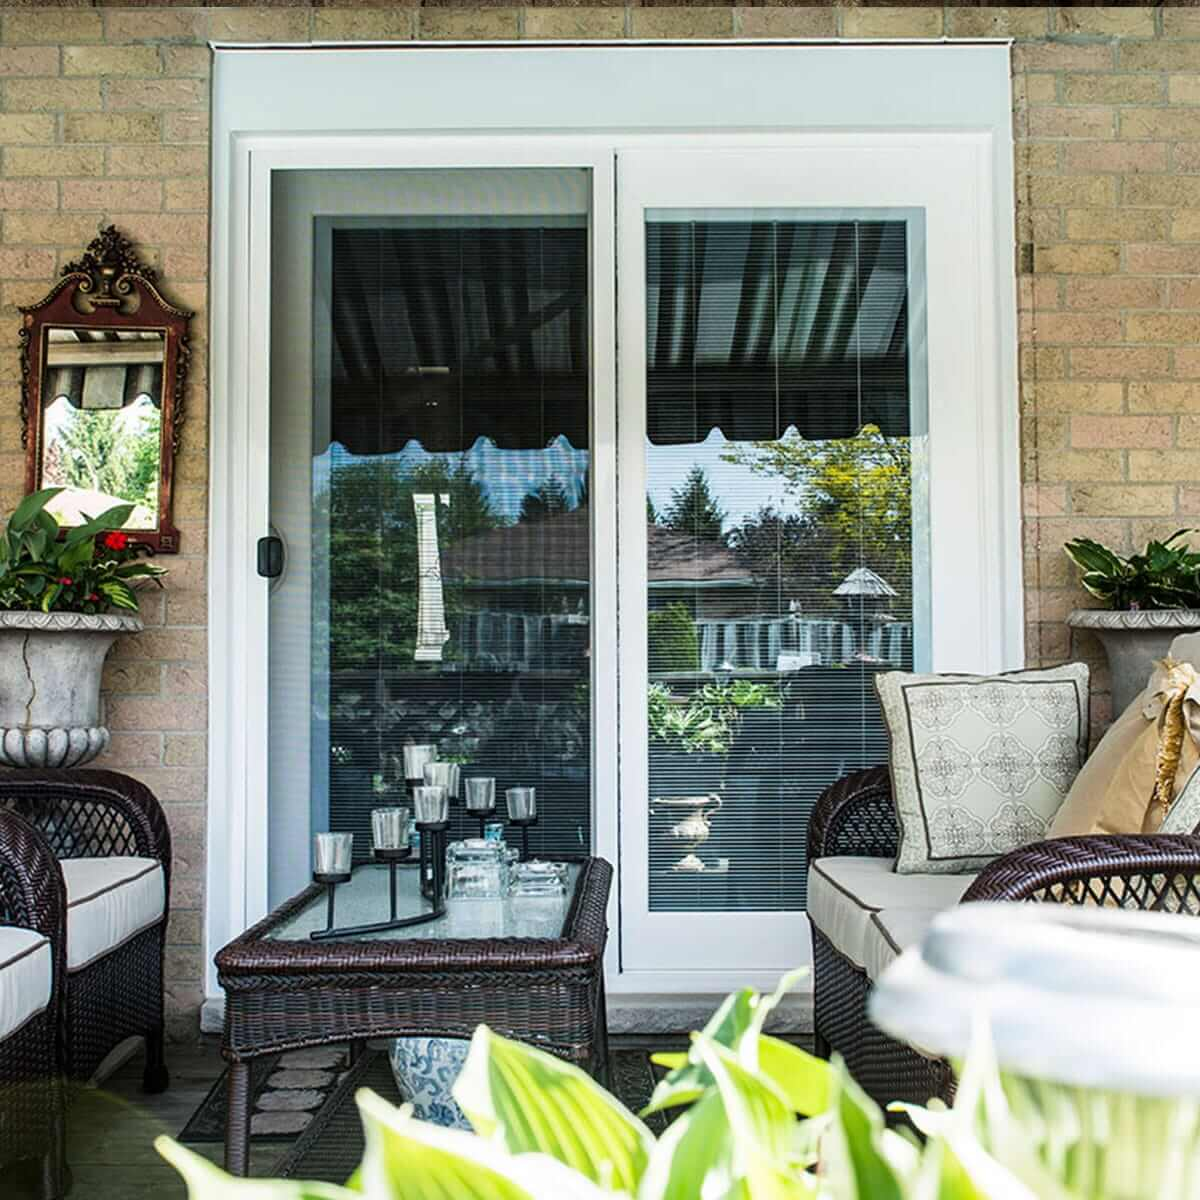 Sliding Glass Patio Doors With White Trim : fibreglass door - pezcame.com